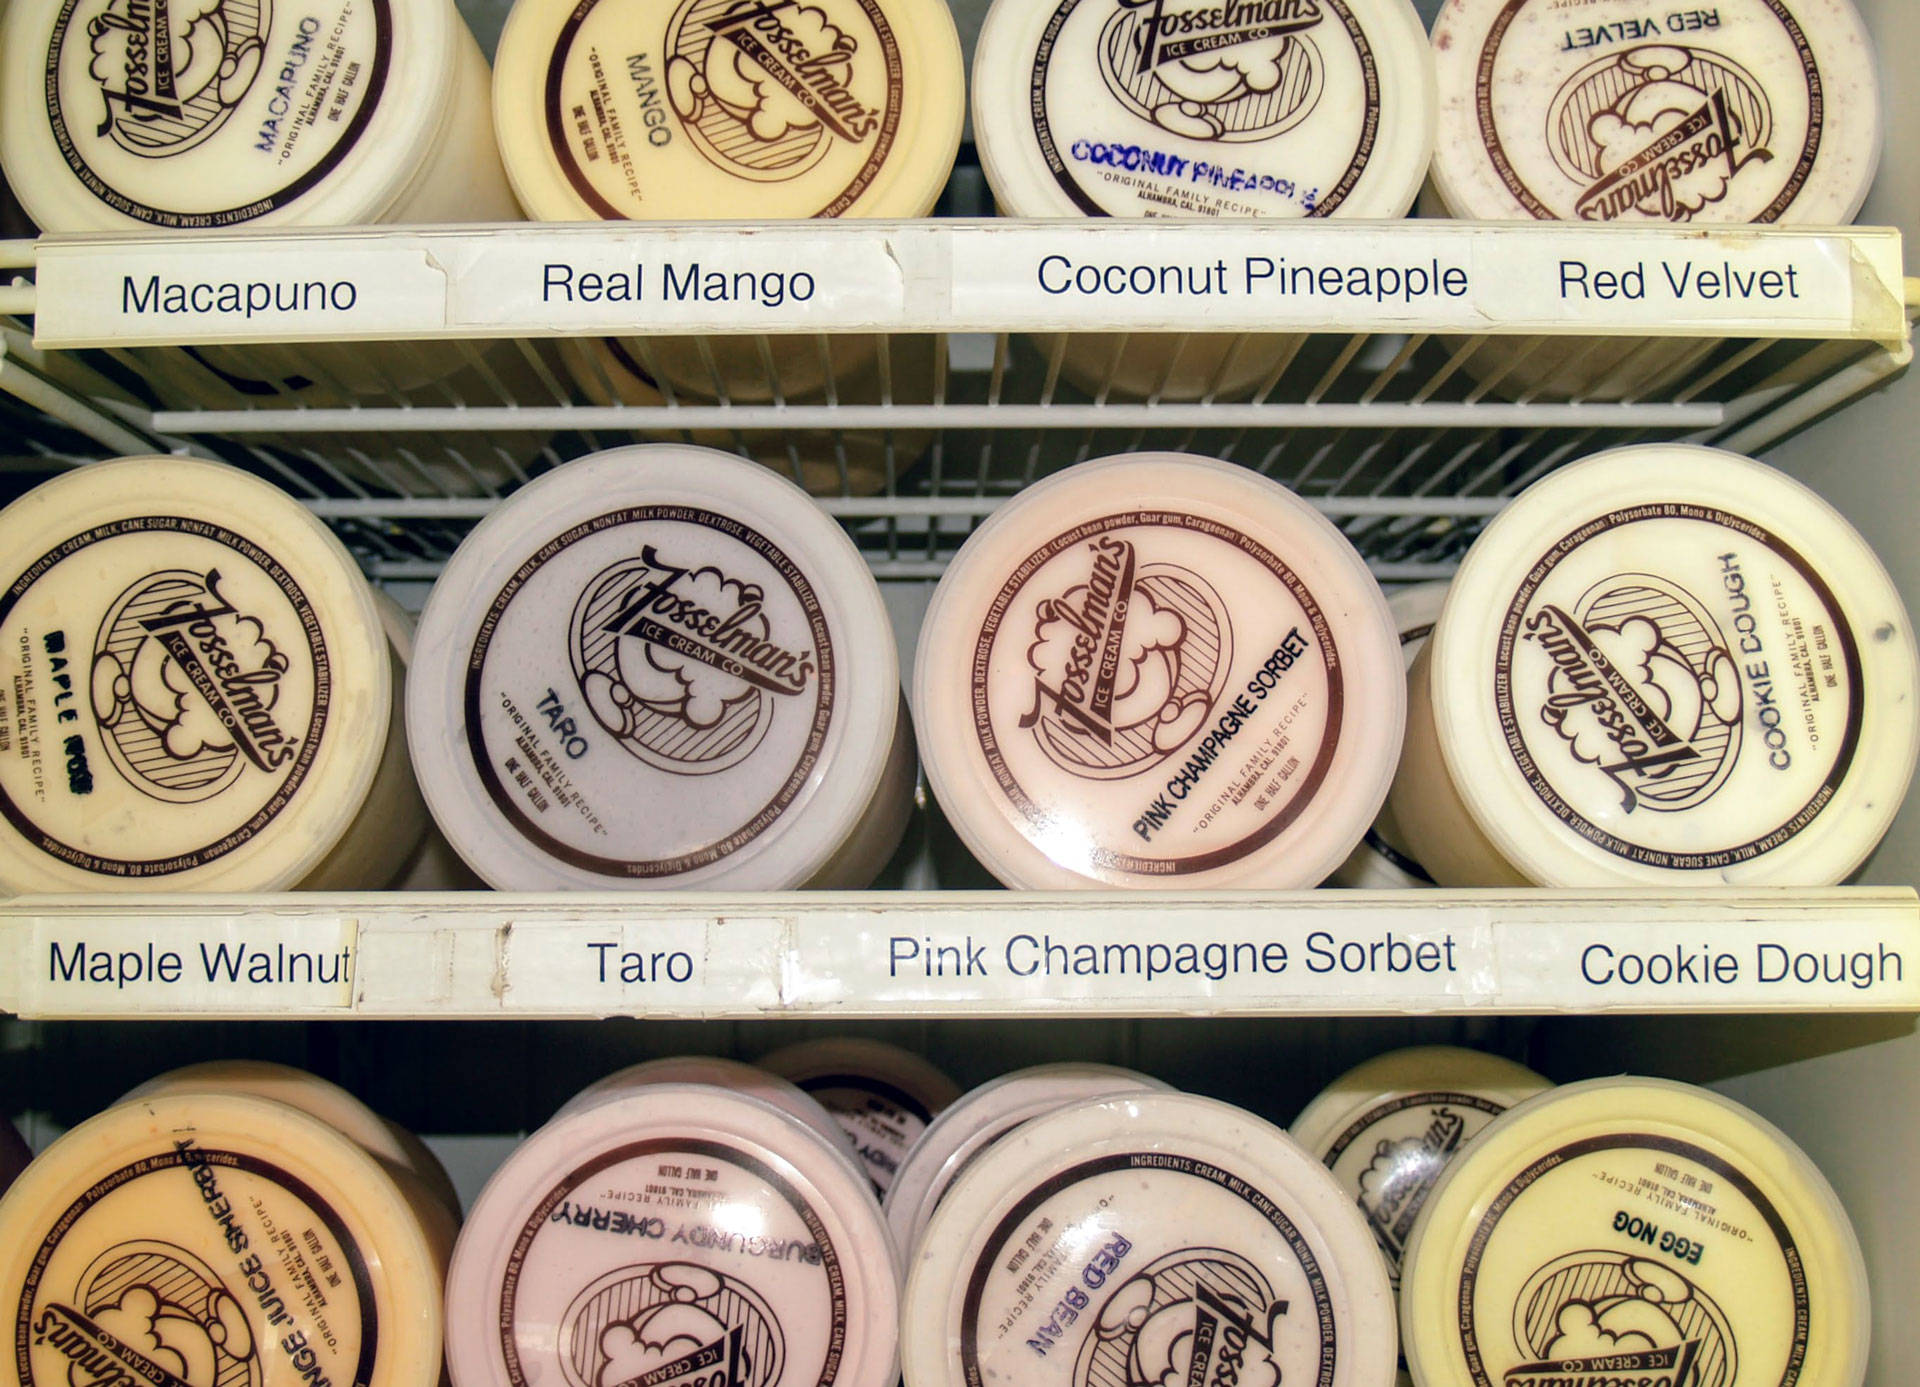 Fosselman's offers more than 200 ice cream flavors. Taro is one of the most popular. Elizabeth Aguilera/CALmatters